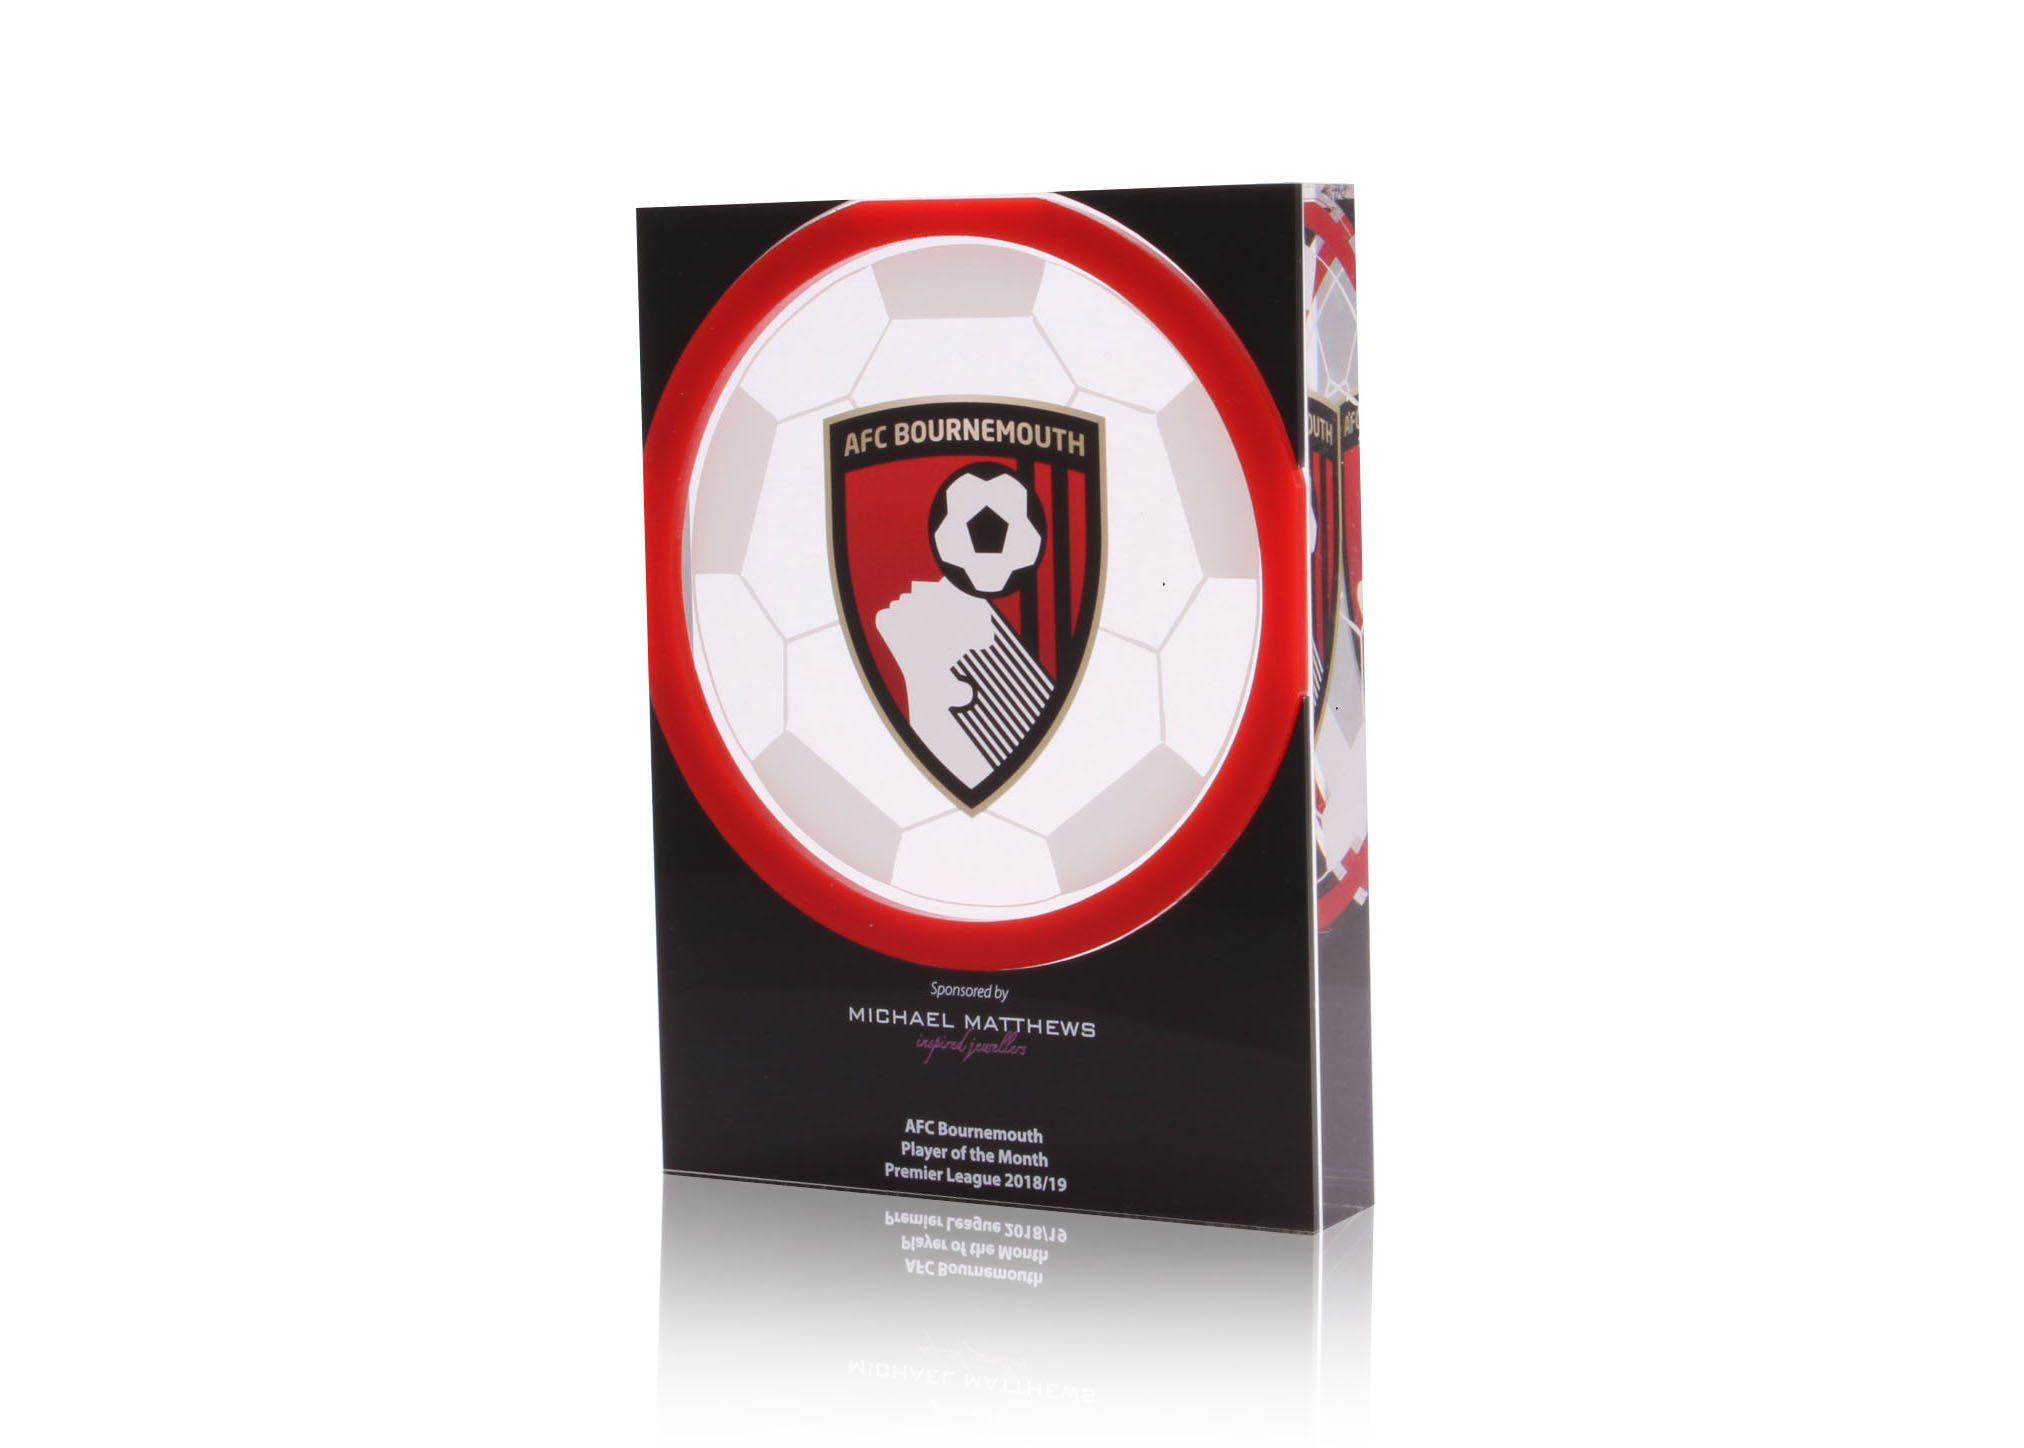 AFC Bournemouth Trophy